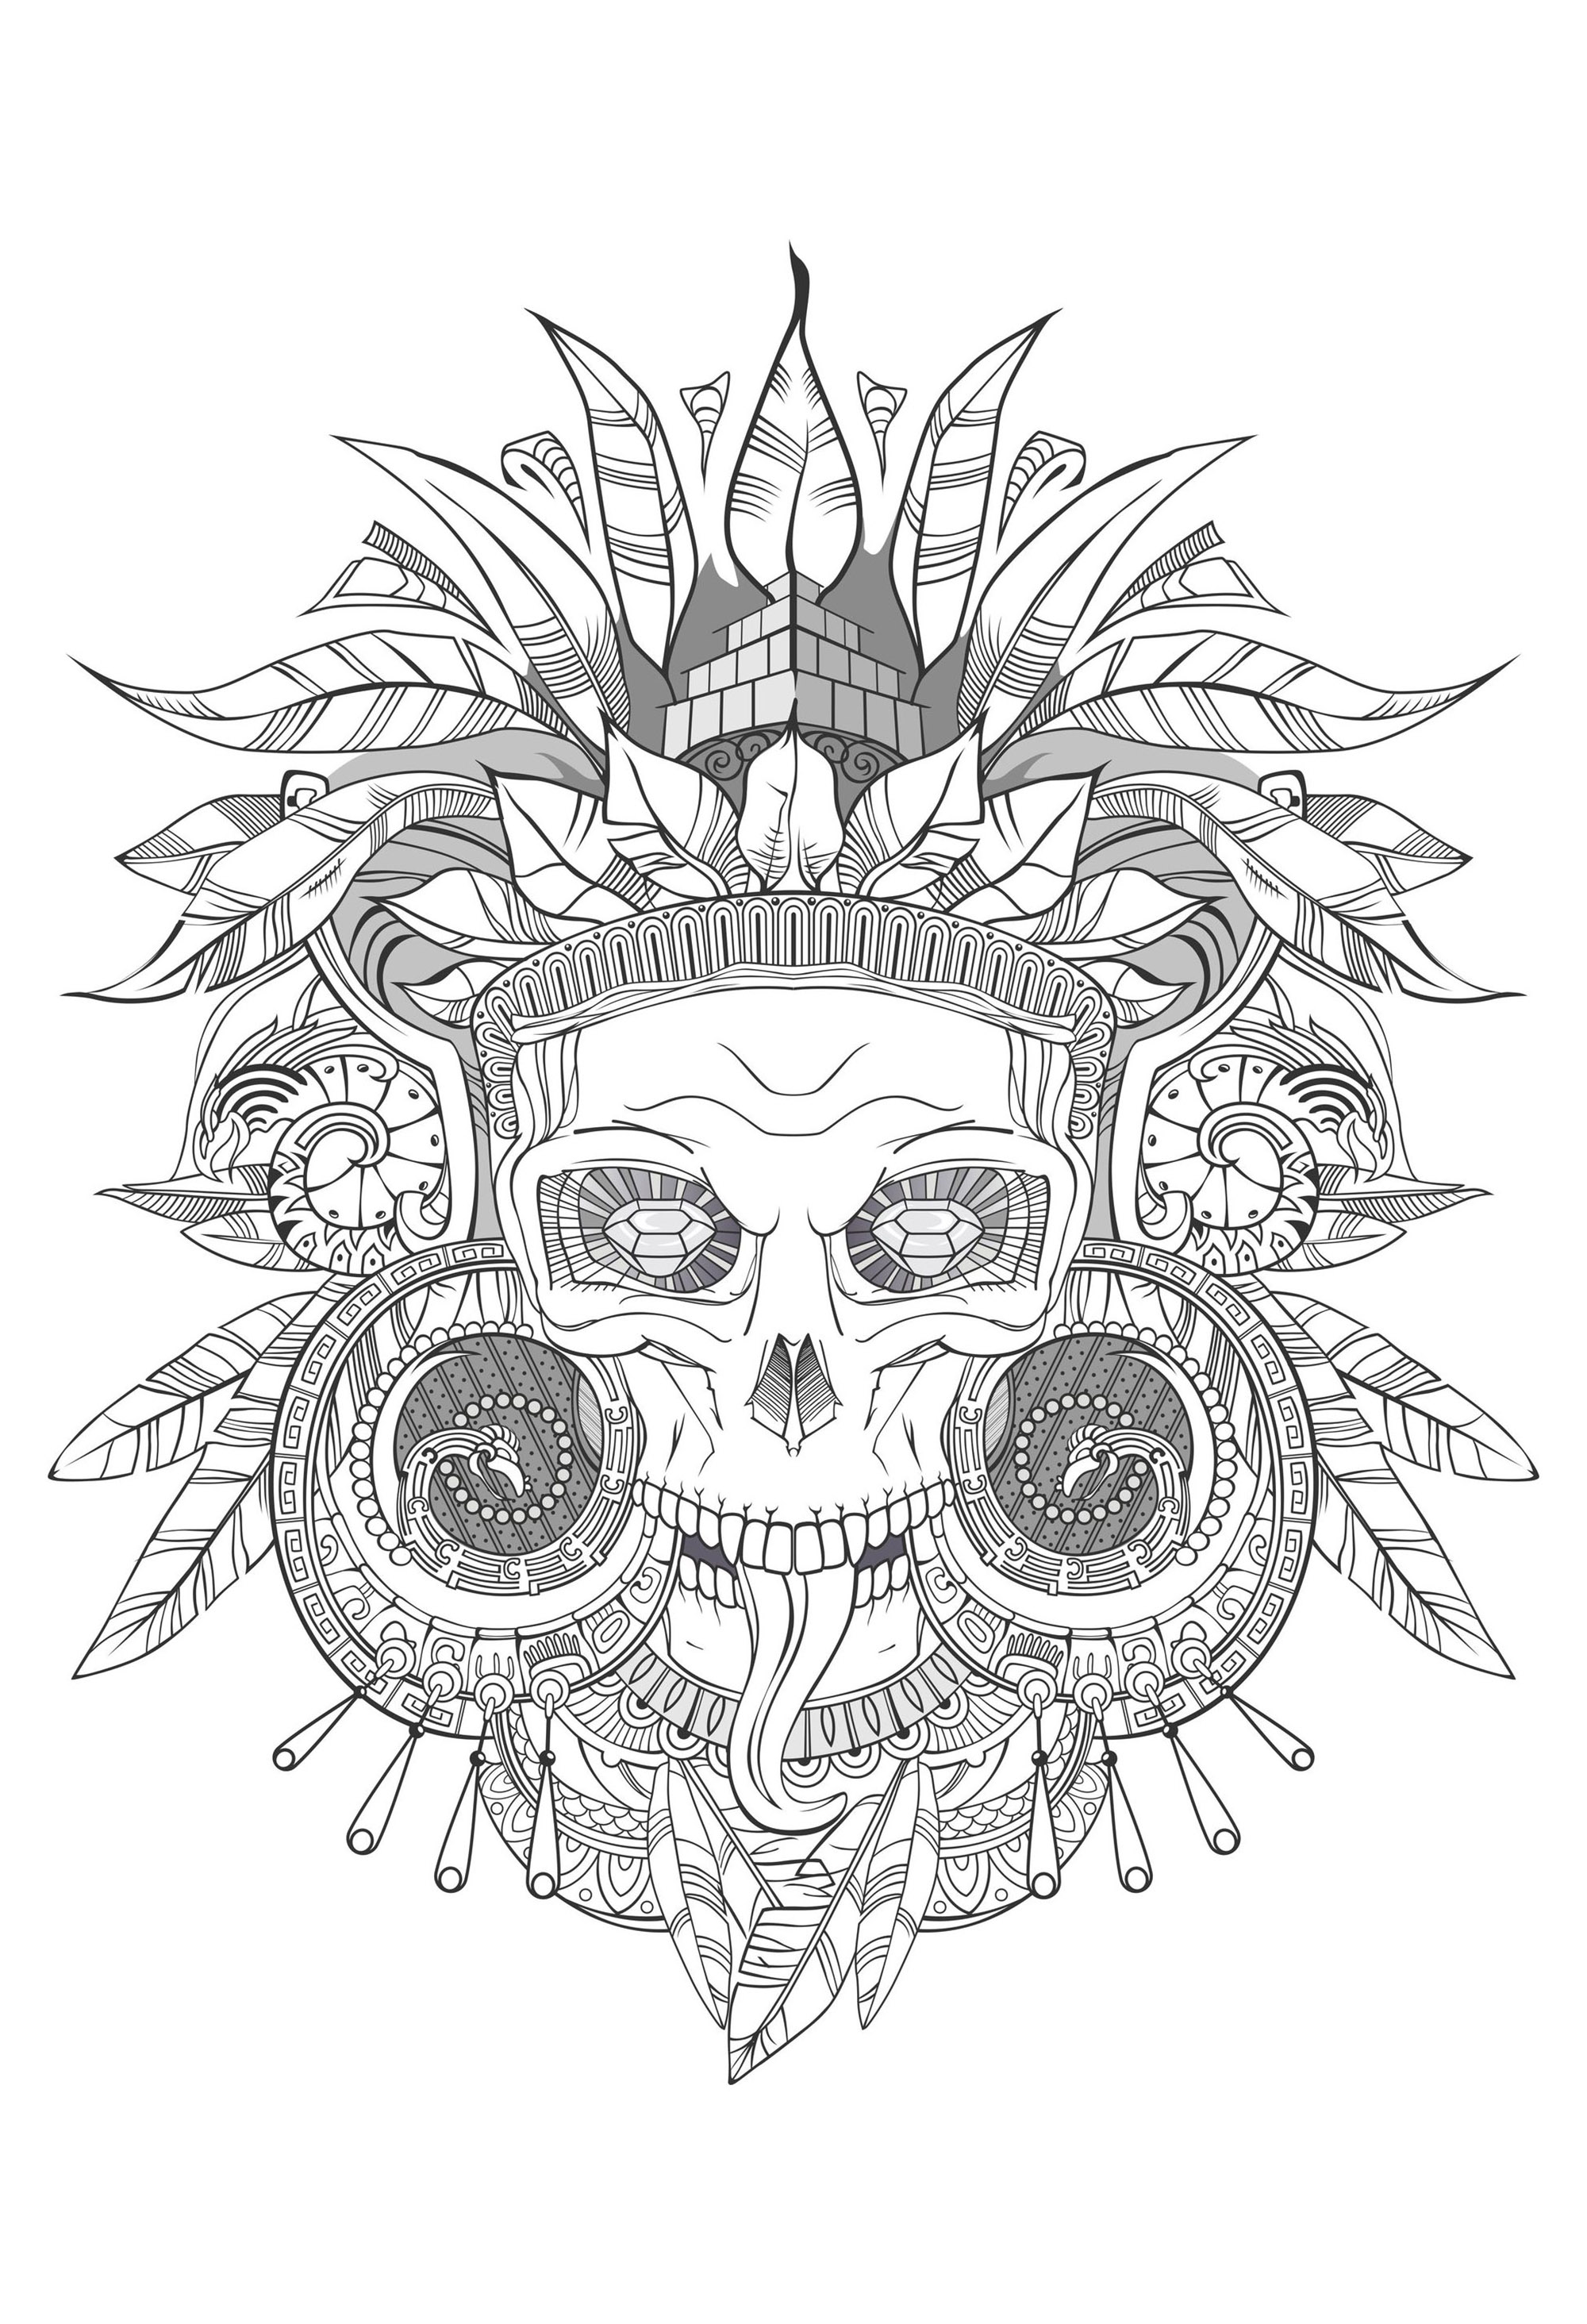 Coloring aztec skull shades of grey